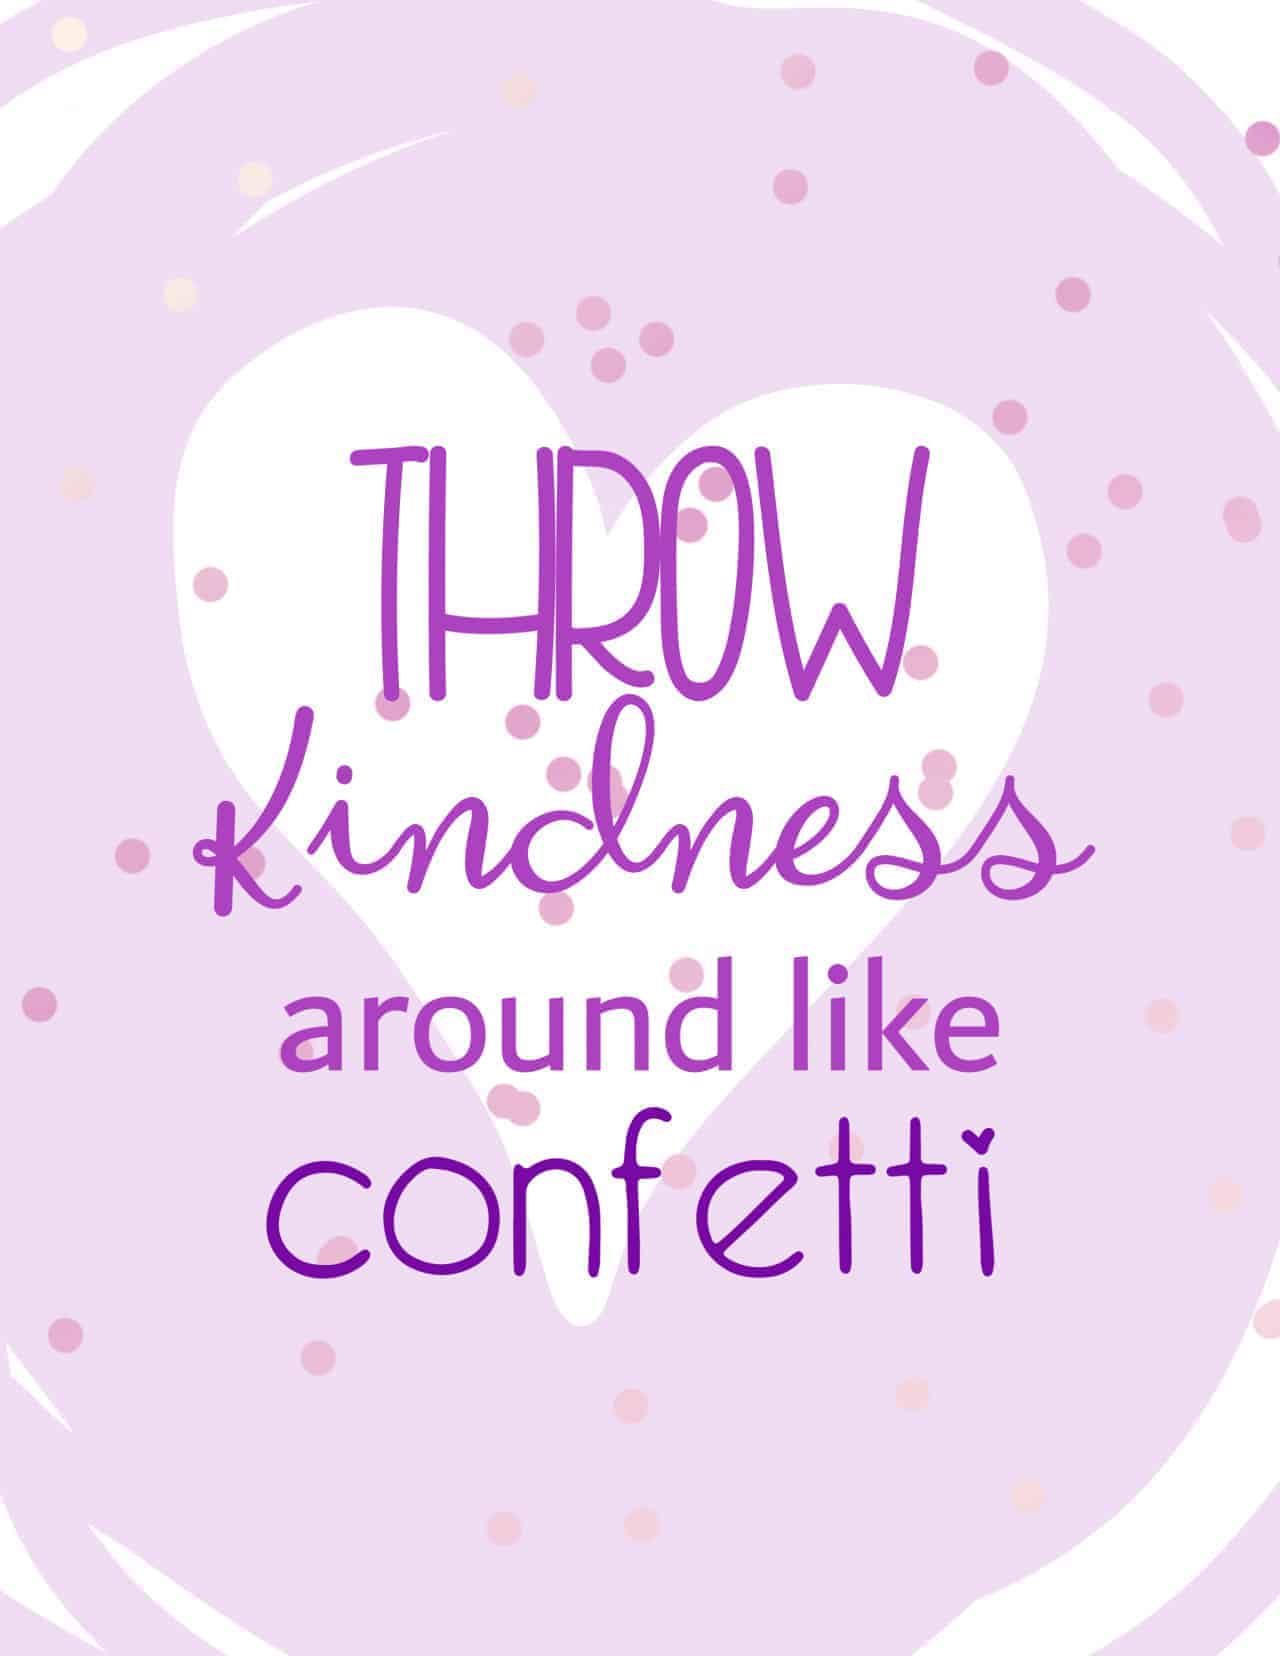 Throw Kindness Around Like Confetti - with light purple heart shaped background and pinkish confetti